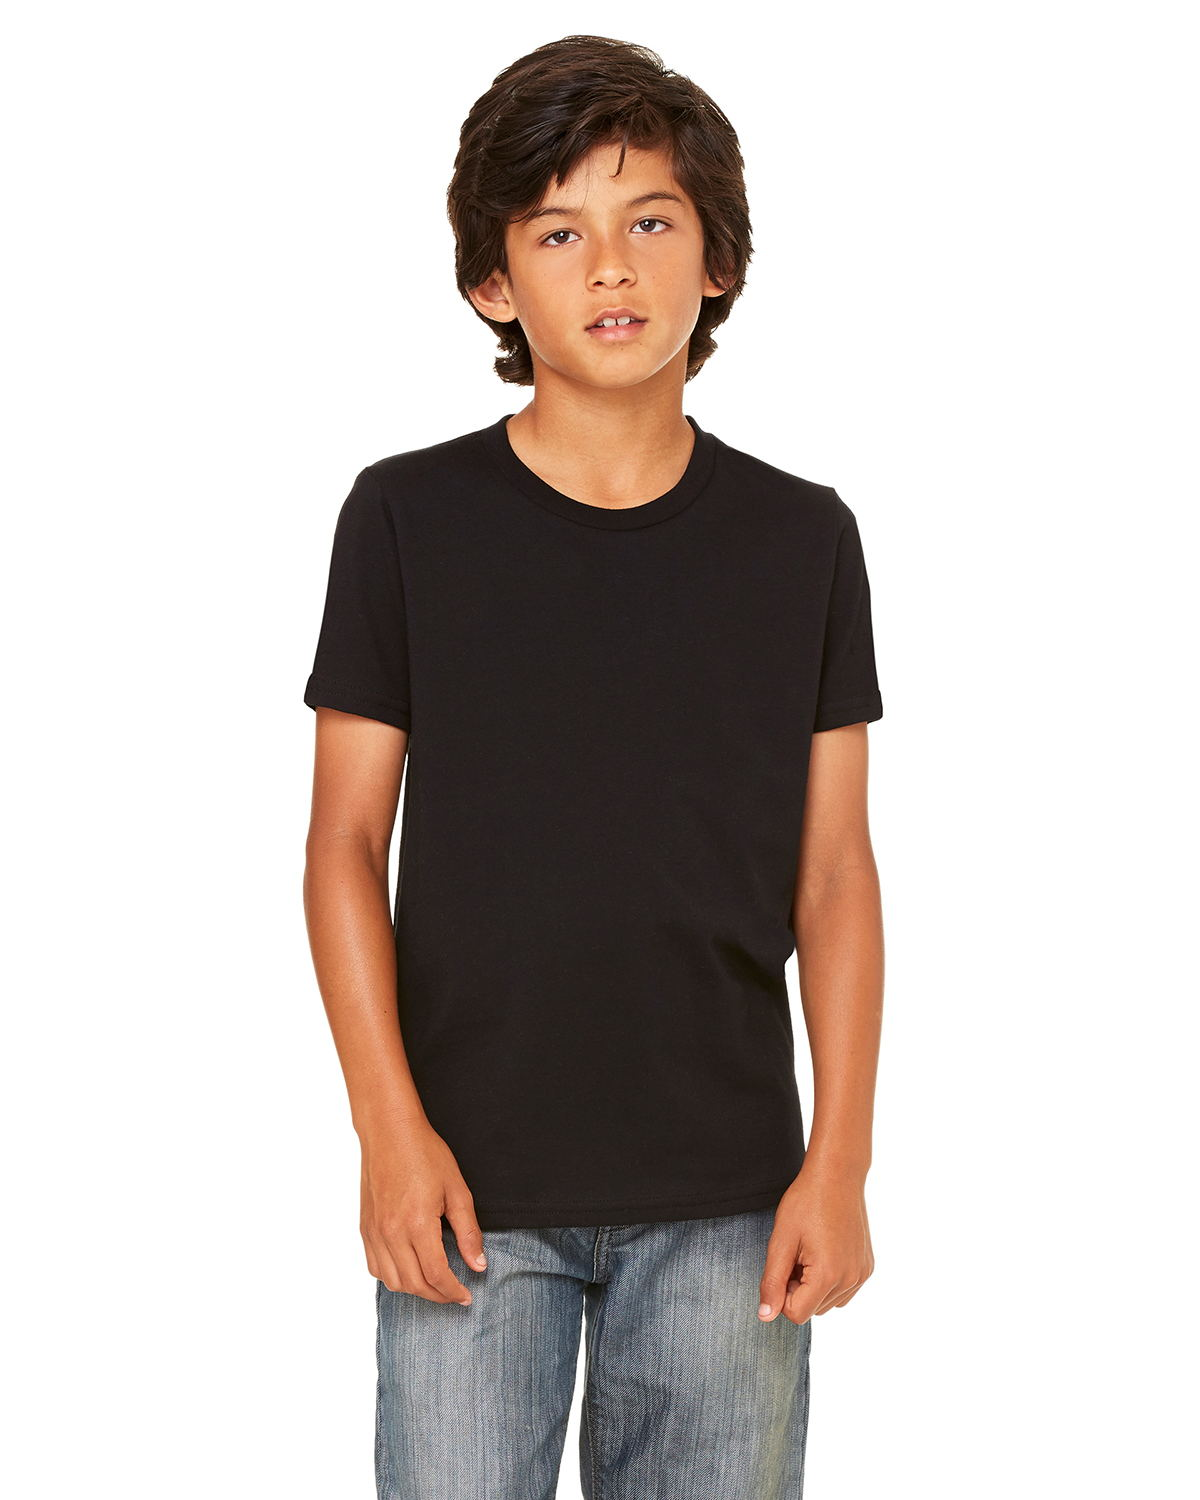 Canvas 3001Y - Youth Short Sleeve T-Shirt